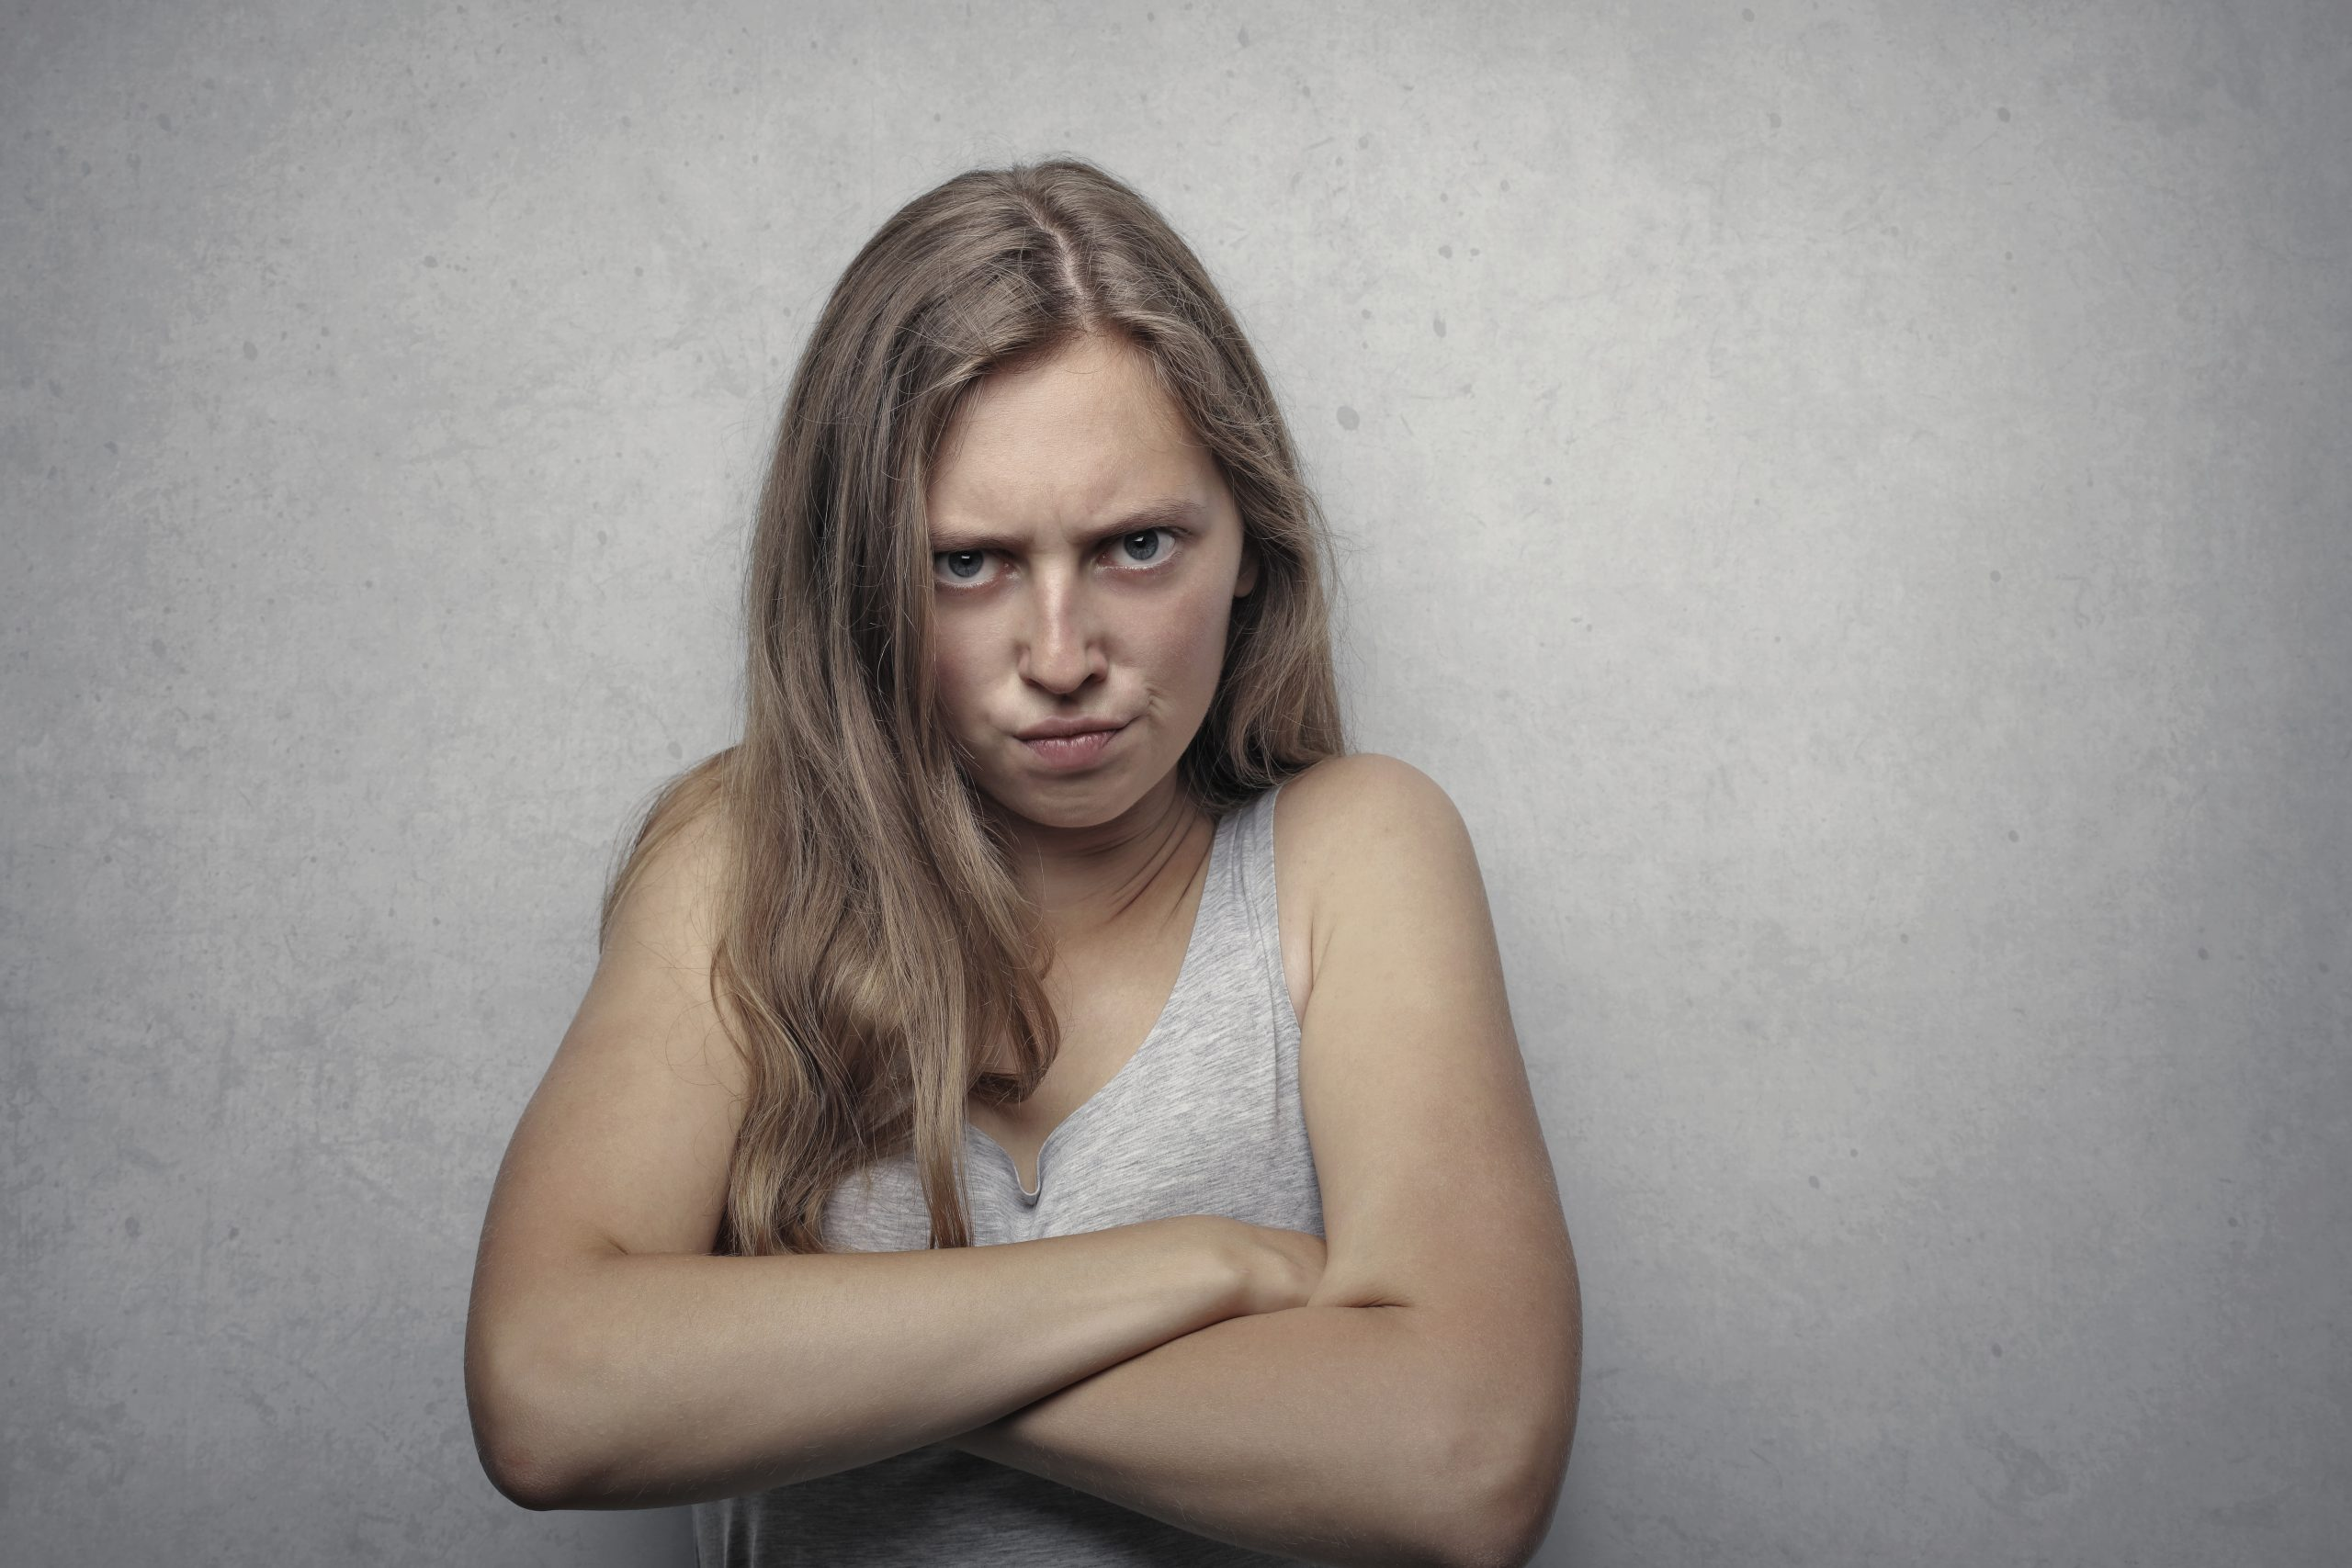 Want to Stop Feeling Annoyed? Here's How